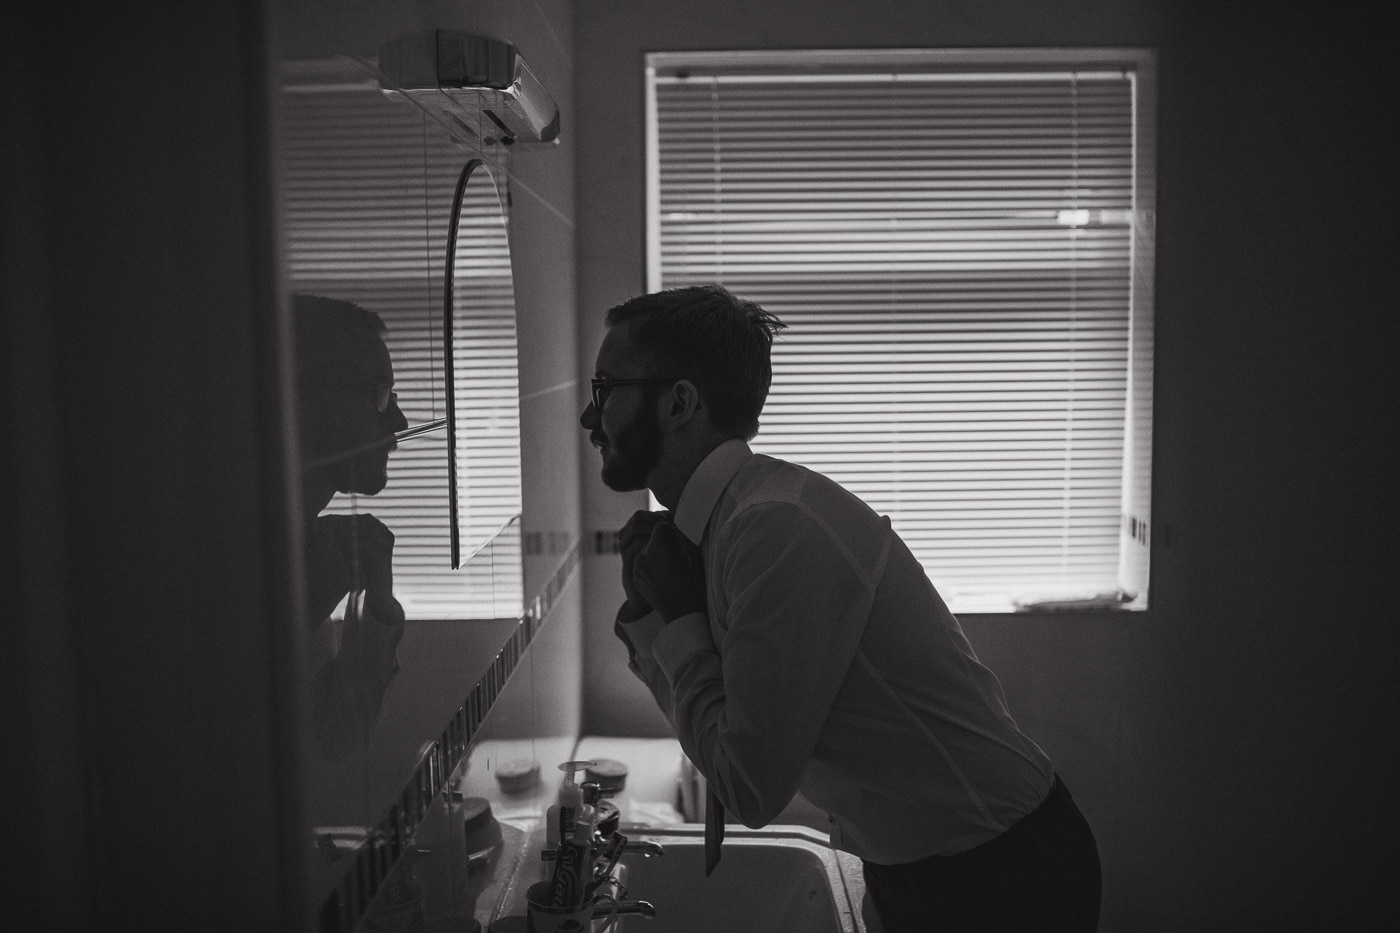 Tying tie in the mirror by wedding photographer